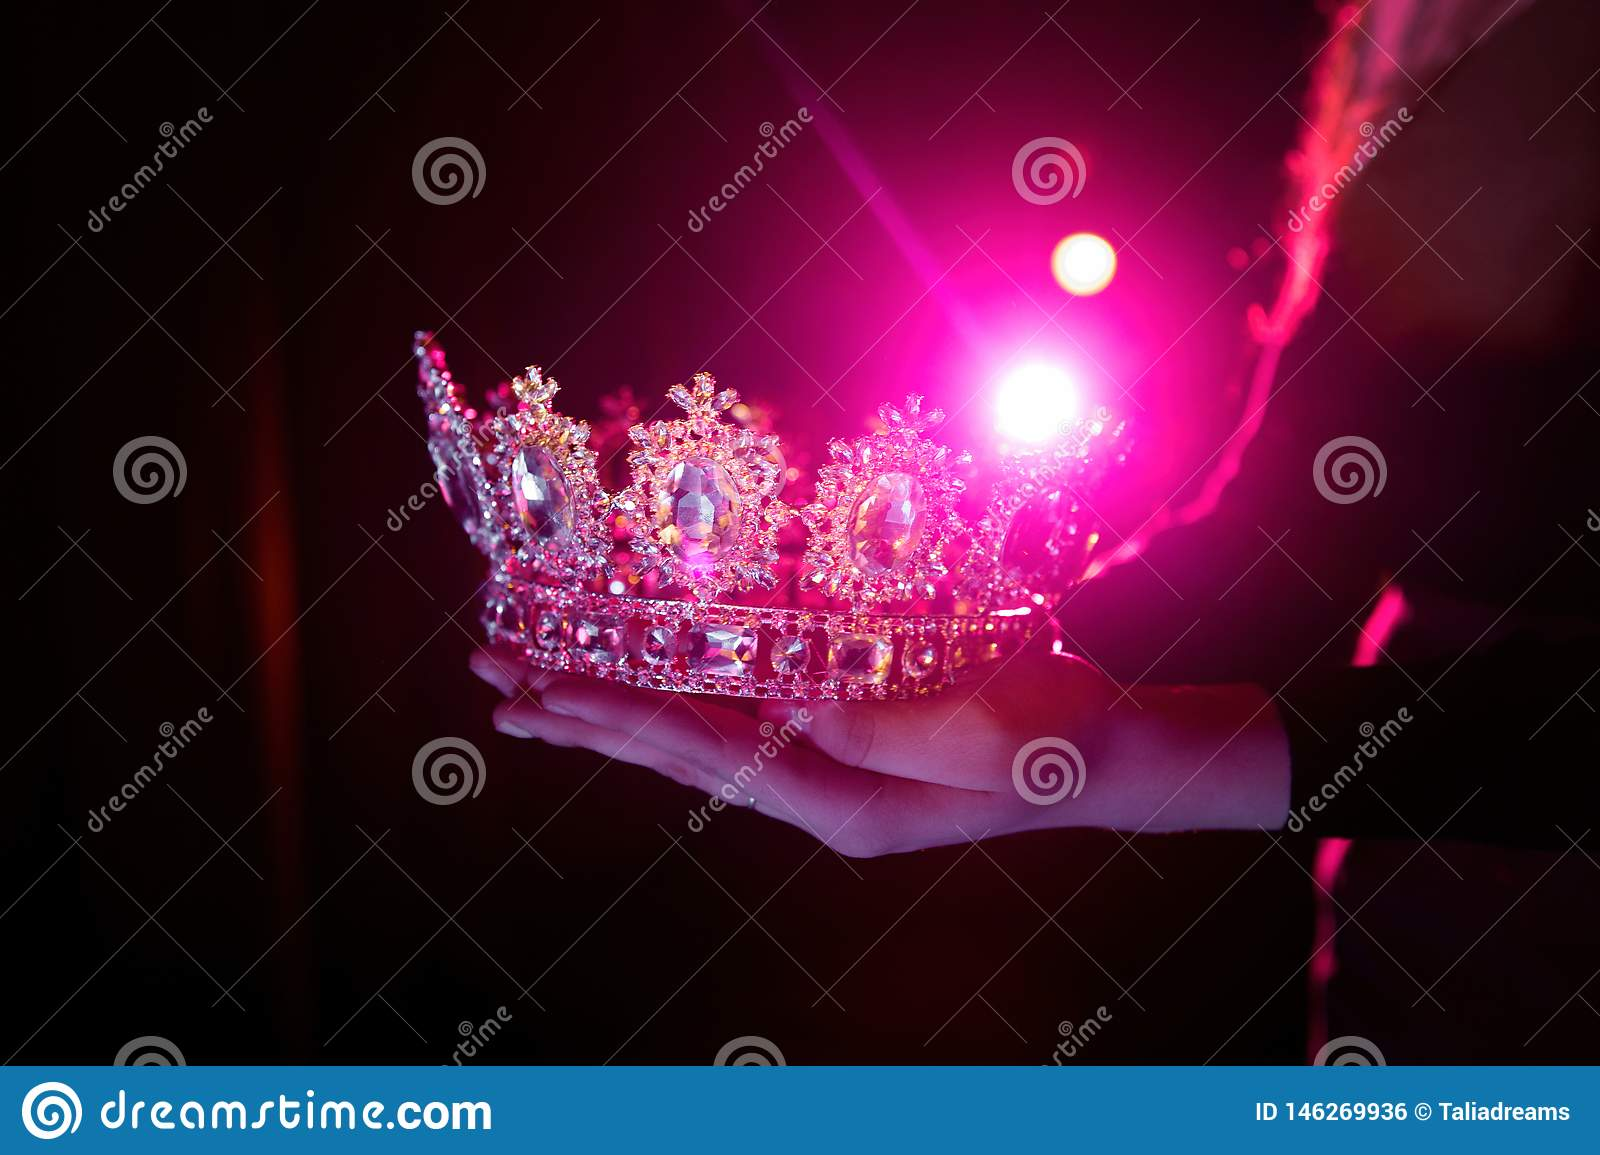 Shining crown in the hands